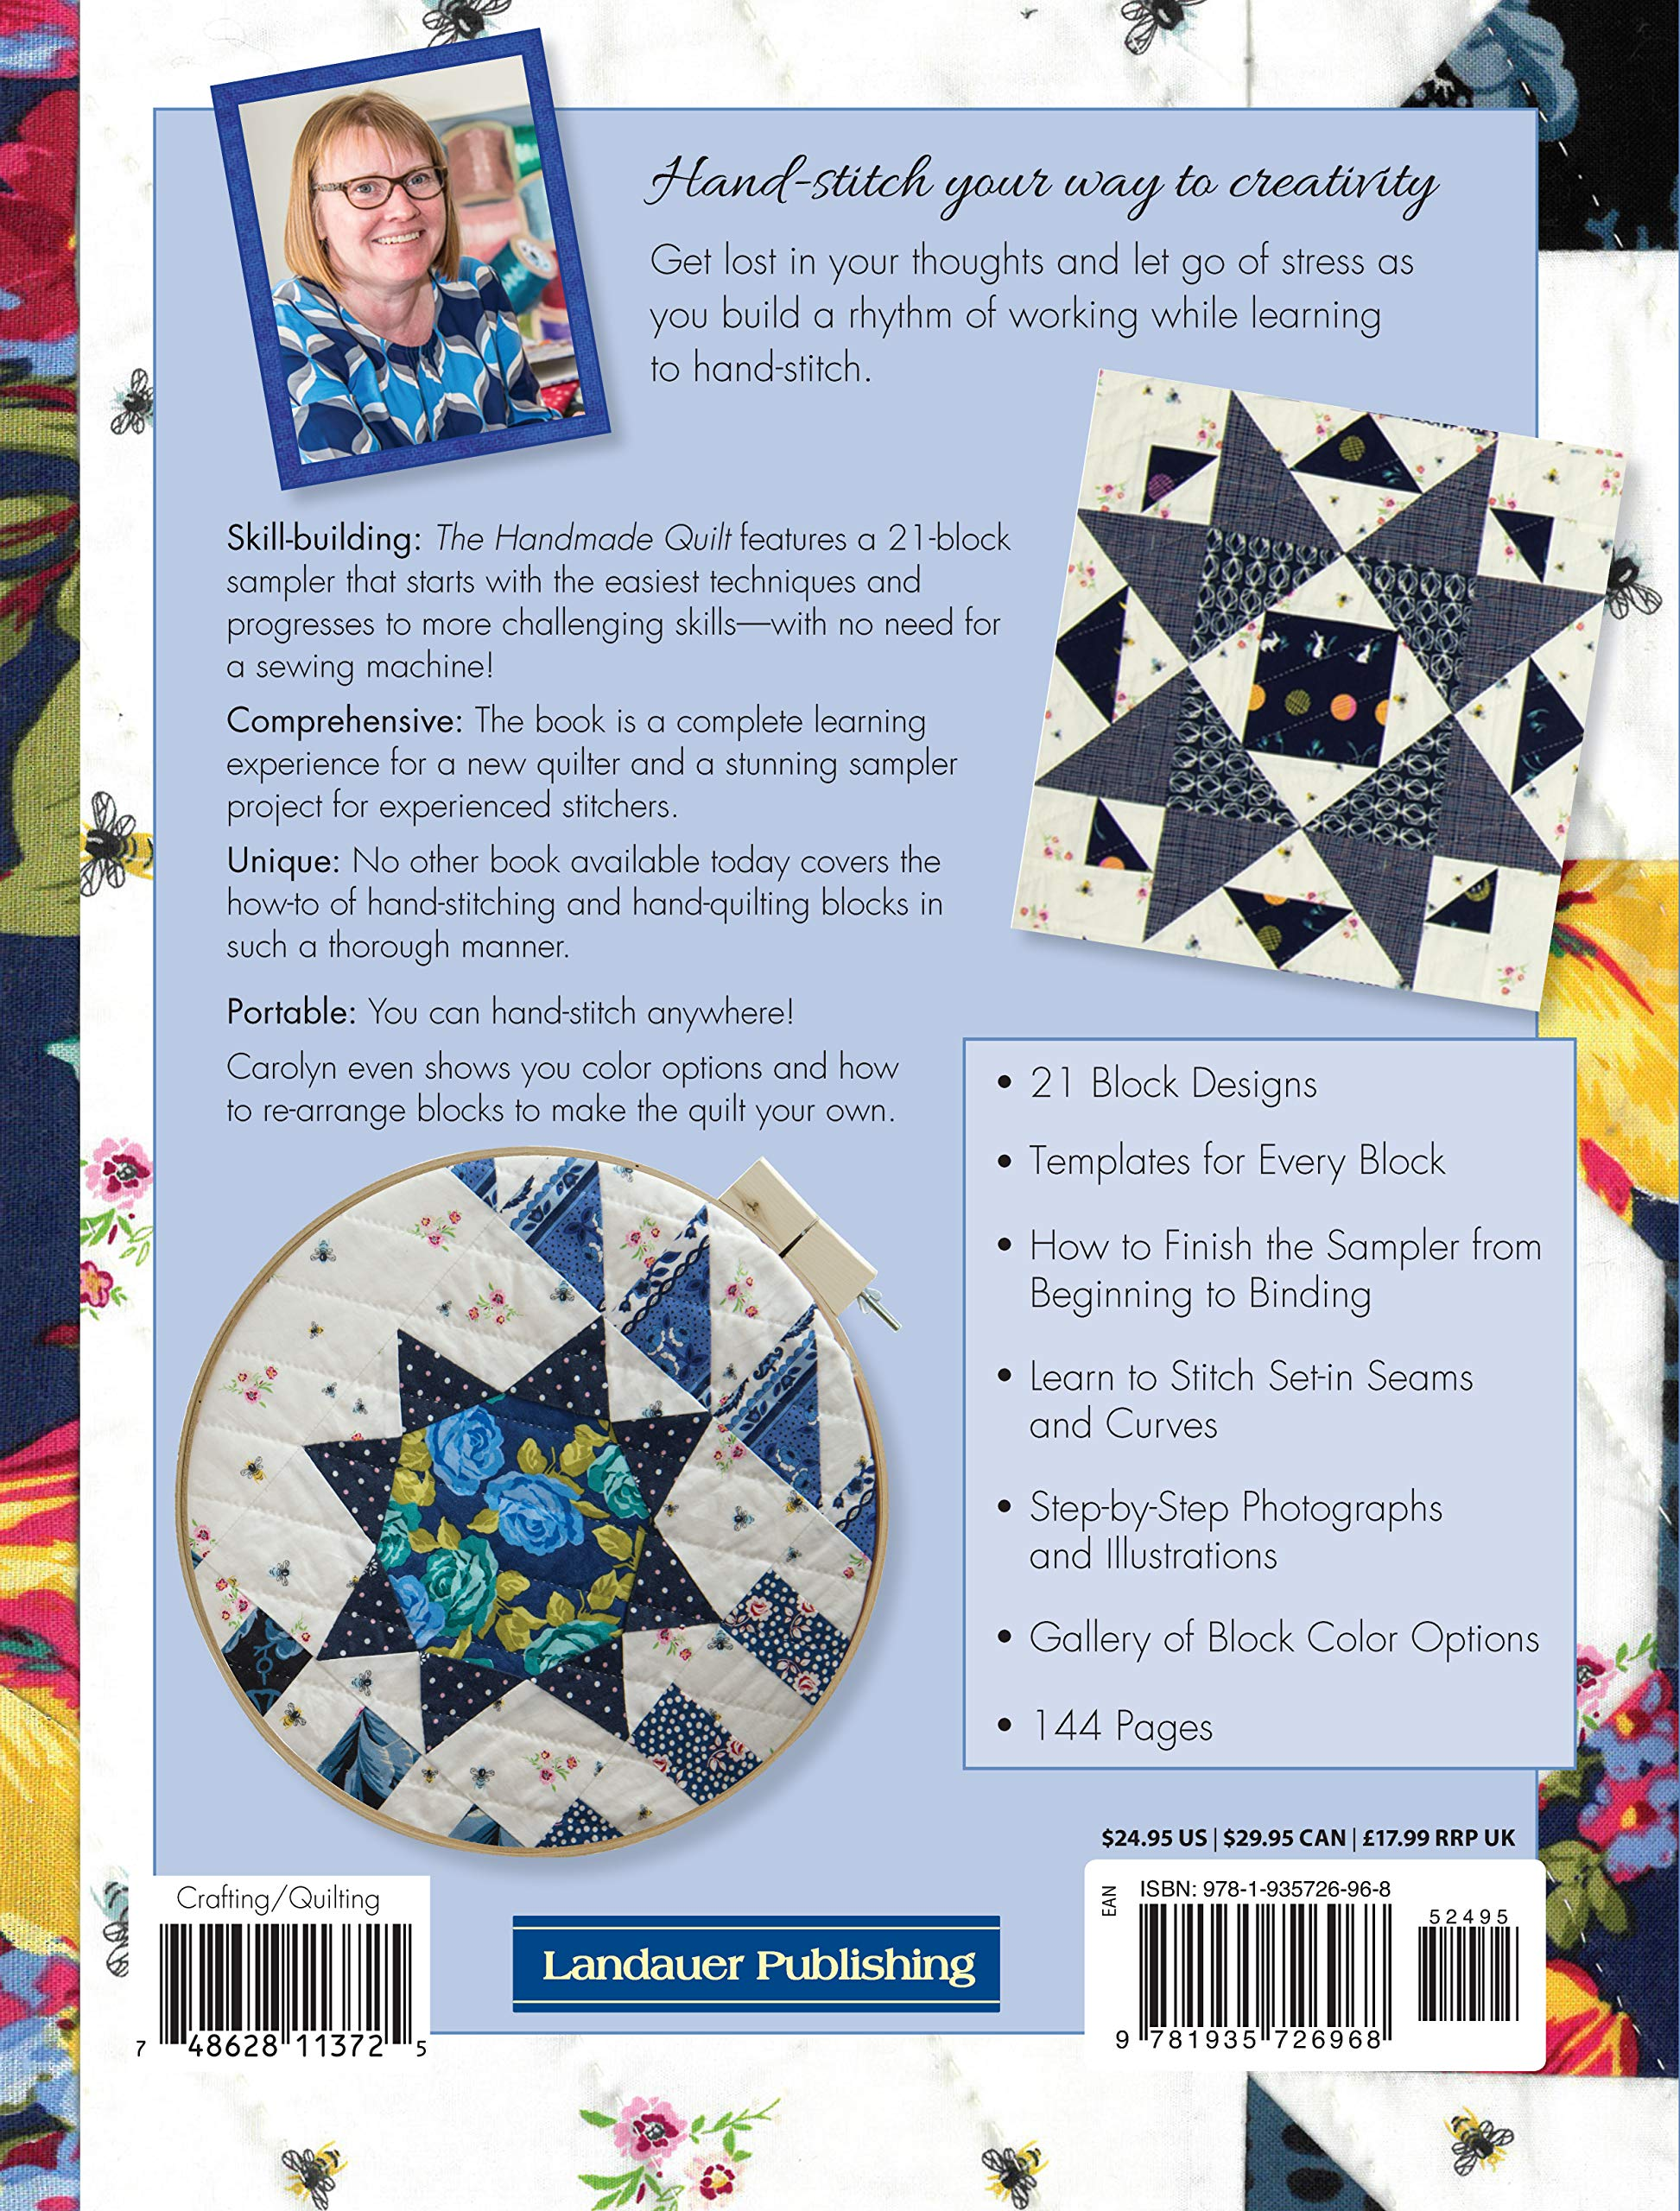 b25780b761a The Handmade Quilt  A Complete Skill-Building Sampler (Scrap Your Stash)   Amazon.co.uk  Carolyn Forster  9781935726968  Books